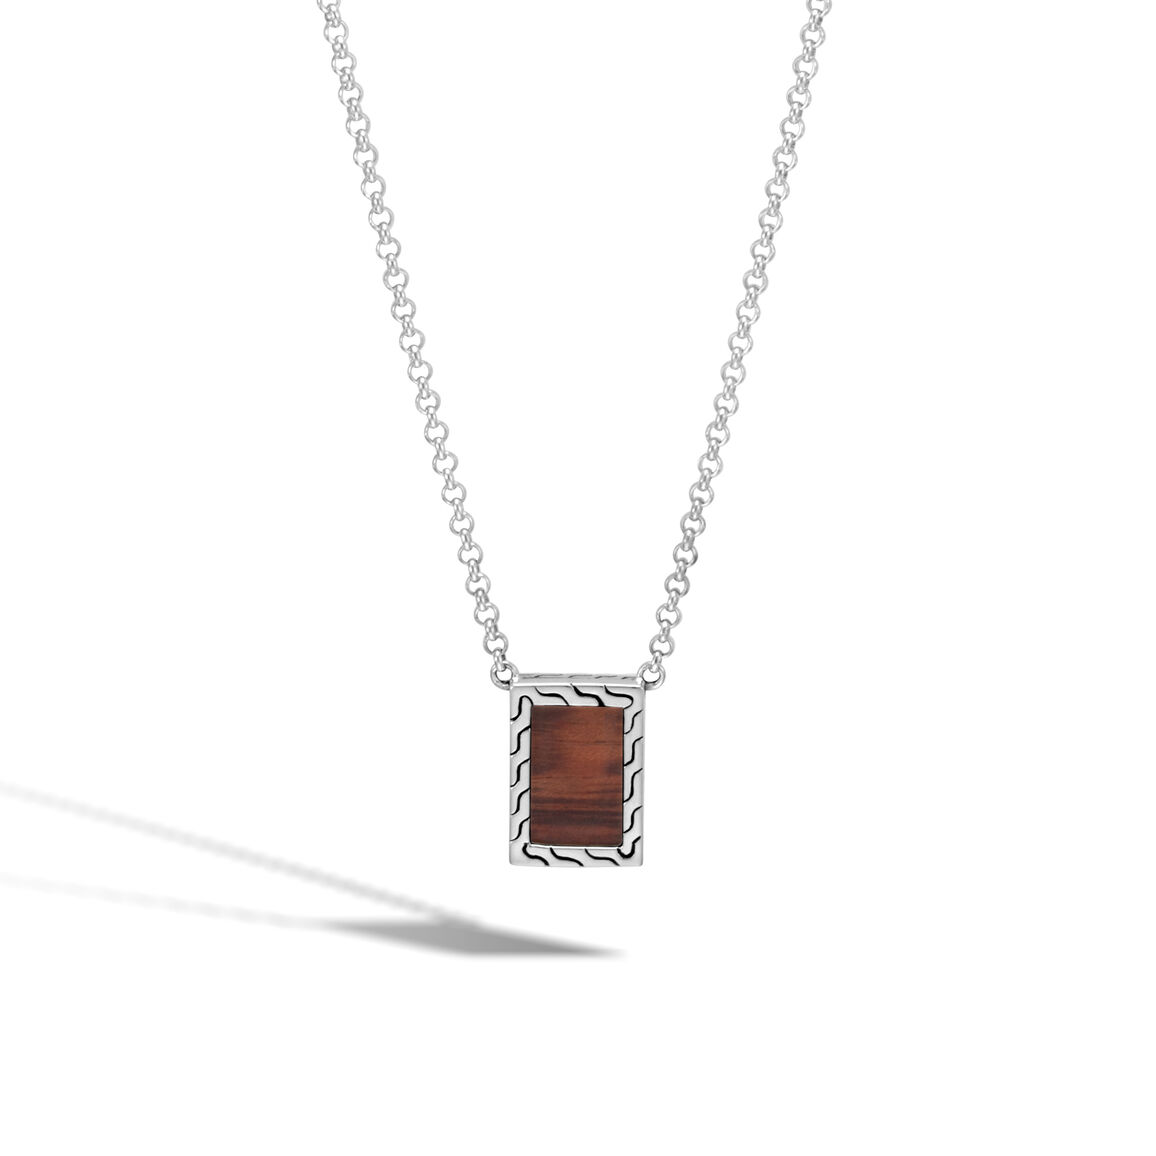 Classic Chain Pendant Necklace, Silver with Gemstone, Wood